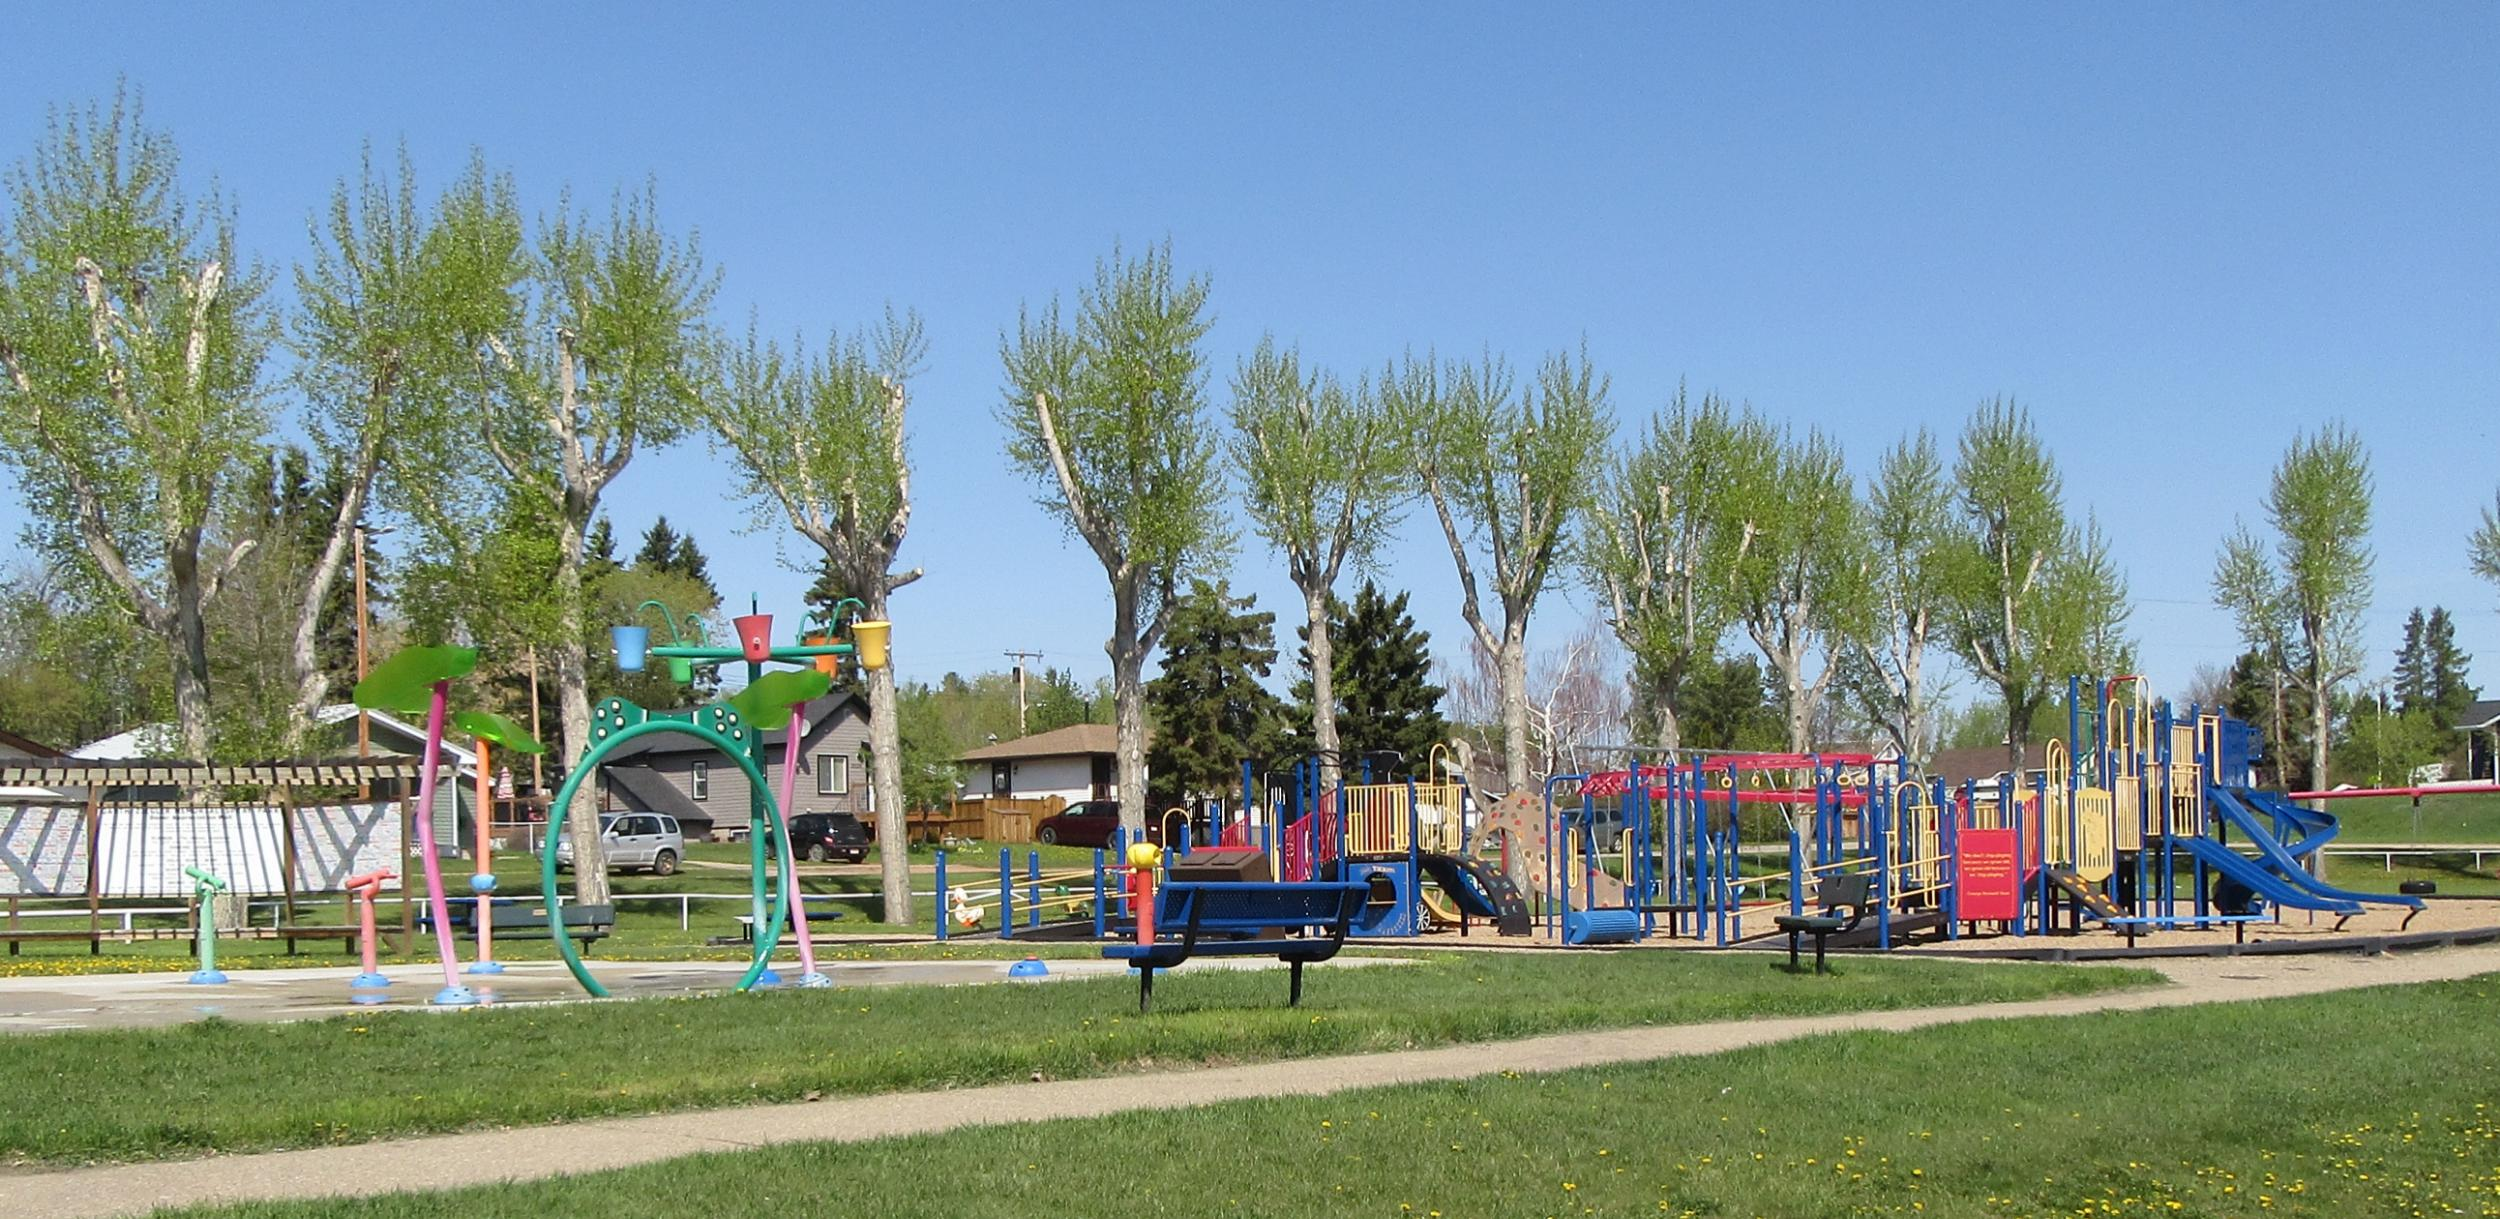 Spray Park and Playground.JPG